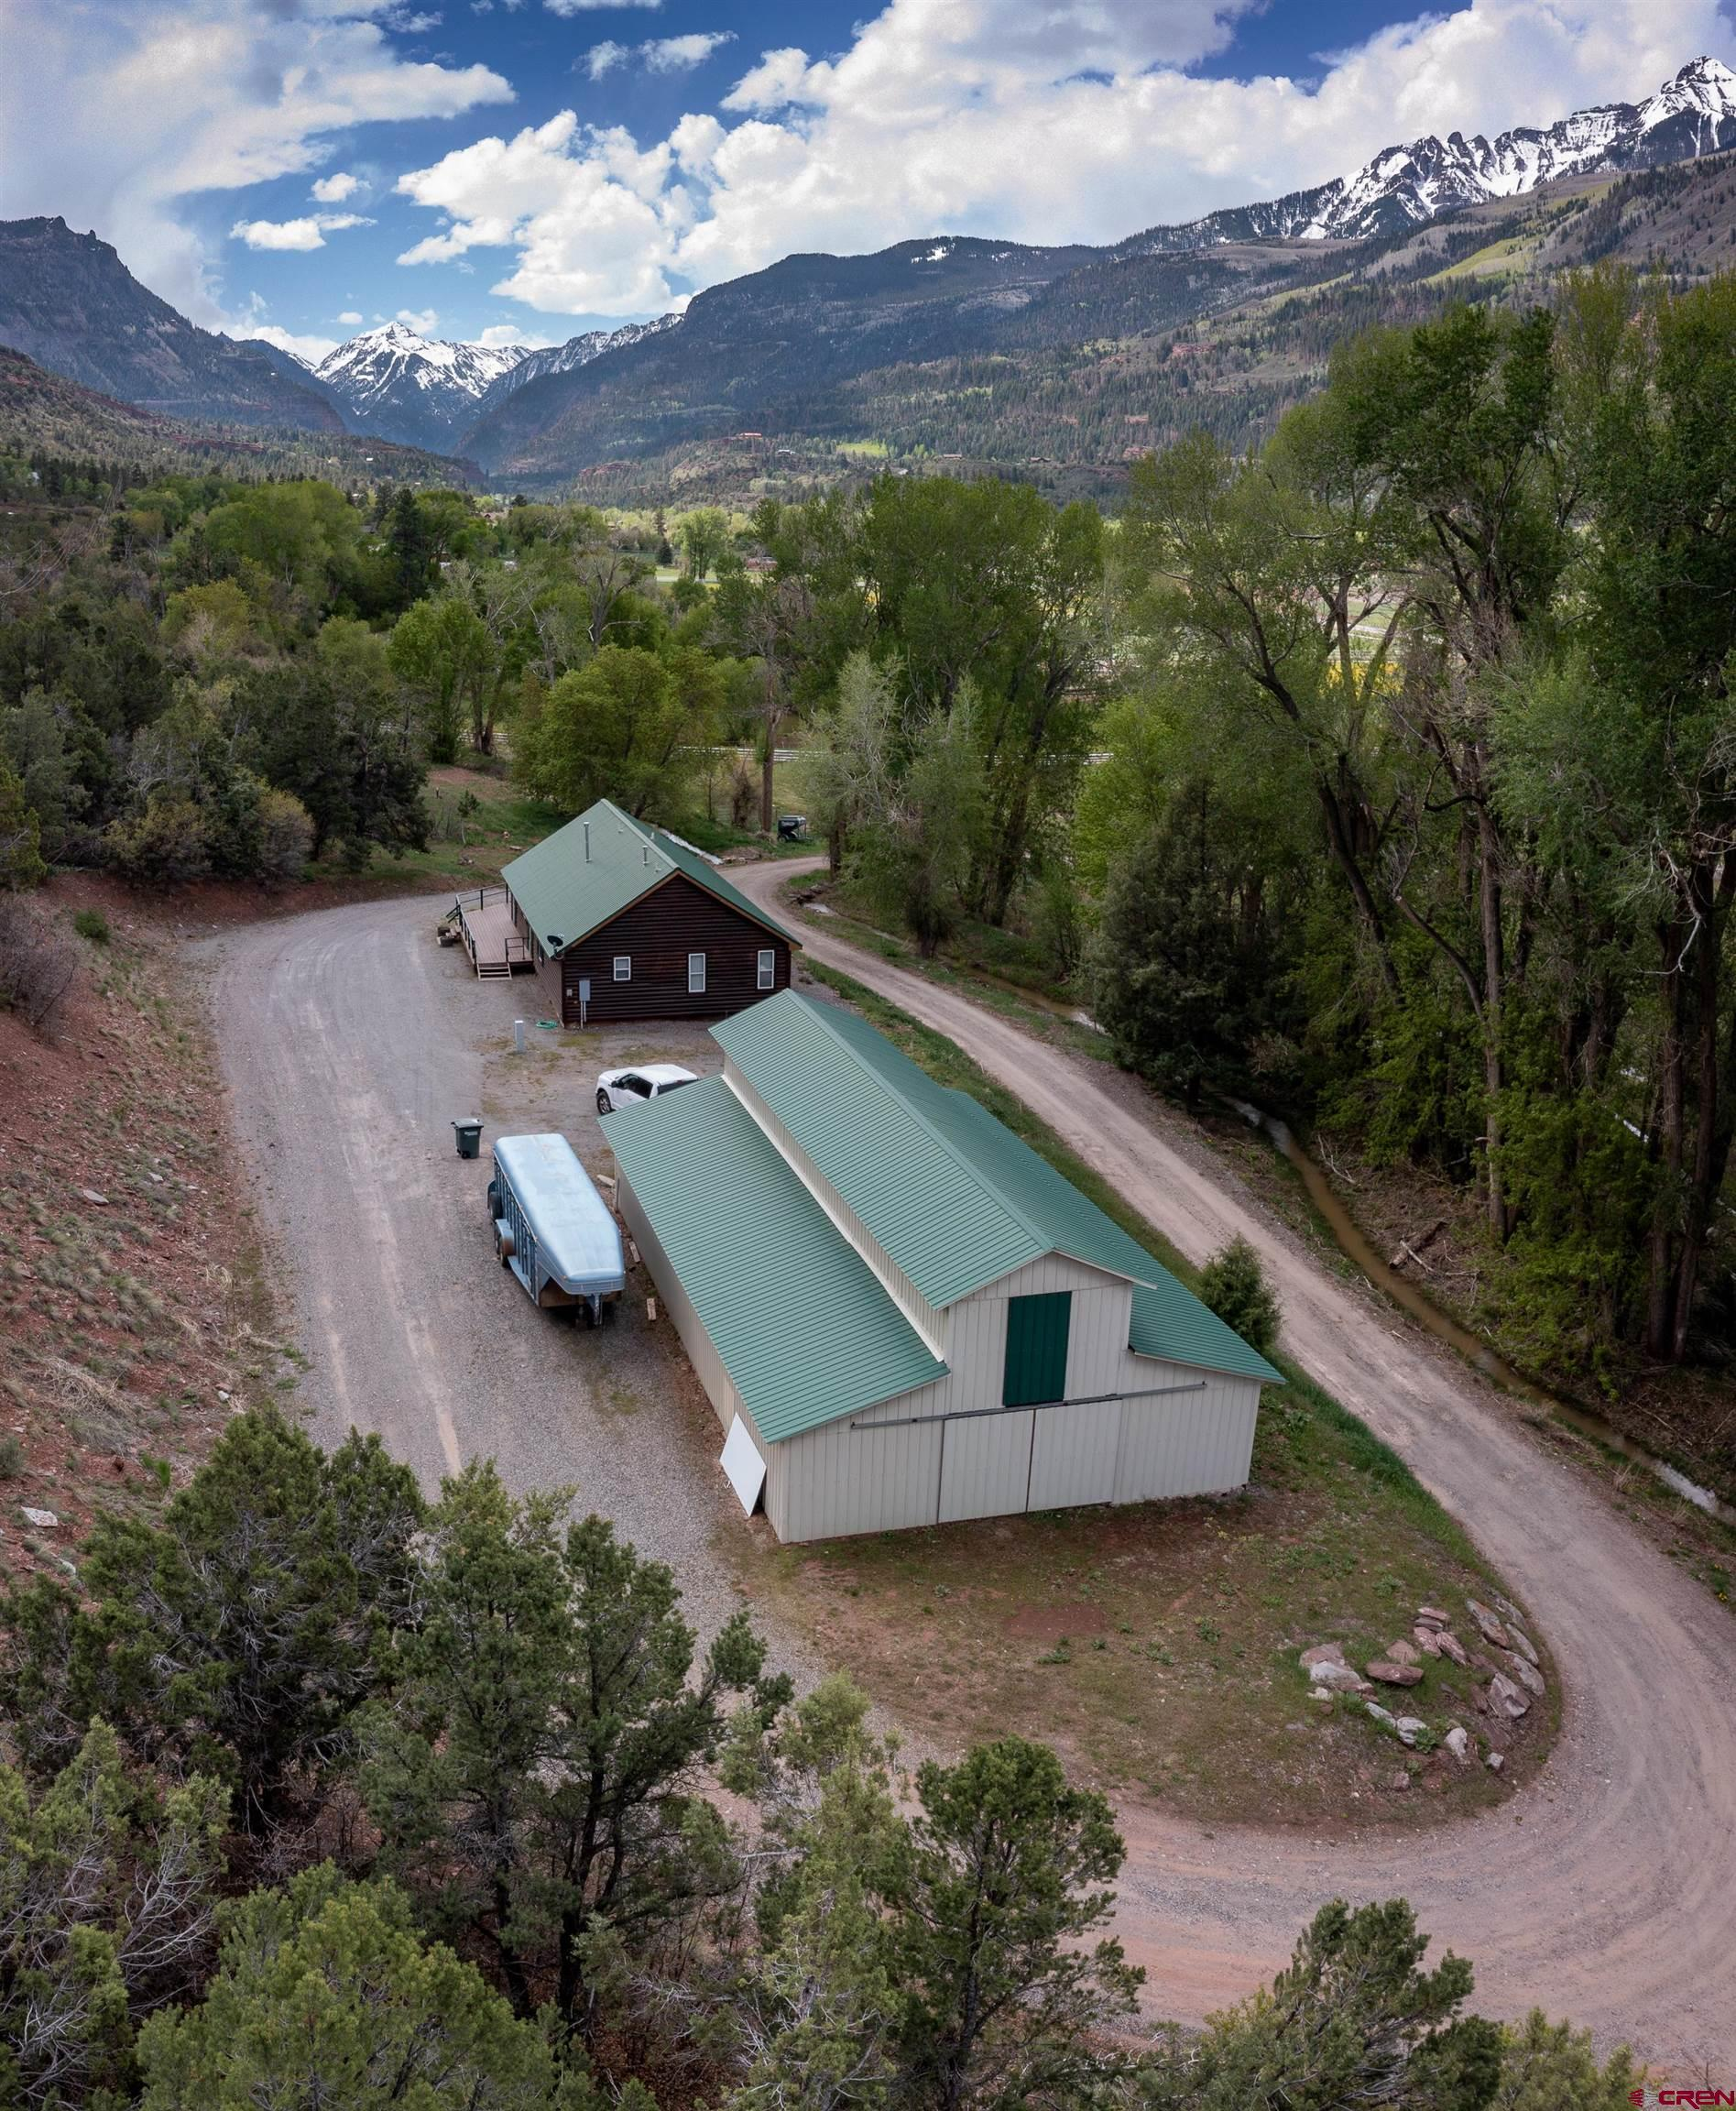 Equestrienne lovers dream property. 36+ acres of land that backs up to BLM land, 14 irrigated acres of pasture, 32' X 60',five horse stable with tack room and storage room, 24' X 24' garage that is now being used as a wood shop and a massive 80' X 175' clear span riding arena. This arena has 14,000 square foot. Perfect for exercising your horses in the winter. The property is stunning with old growth cottonwood trees, red cliffs and green pastures. There is a very well maintained modular home with three bedrooms, two full baths and a nice laundry room. The house has an open concept with tile floors and a nice soaking tub in the master bathroom. Bay windows in the living room and master bedroom along with a tray ceiling and beautiful sconce lighting and two walk in closets. There is a nice trex deck on two side of the house and log siding making it look like a little log cabin. Live in the house and build your dream trophy home. This property backs up to BLM.  All of this with beautiful views of Mt. Abram and White house peak and the surrounding mountain sides. Come see what this property can offer you and your family.